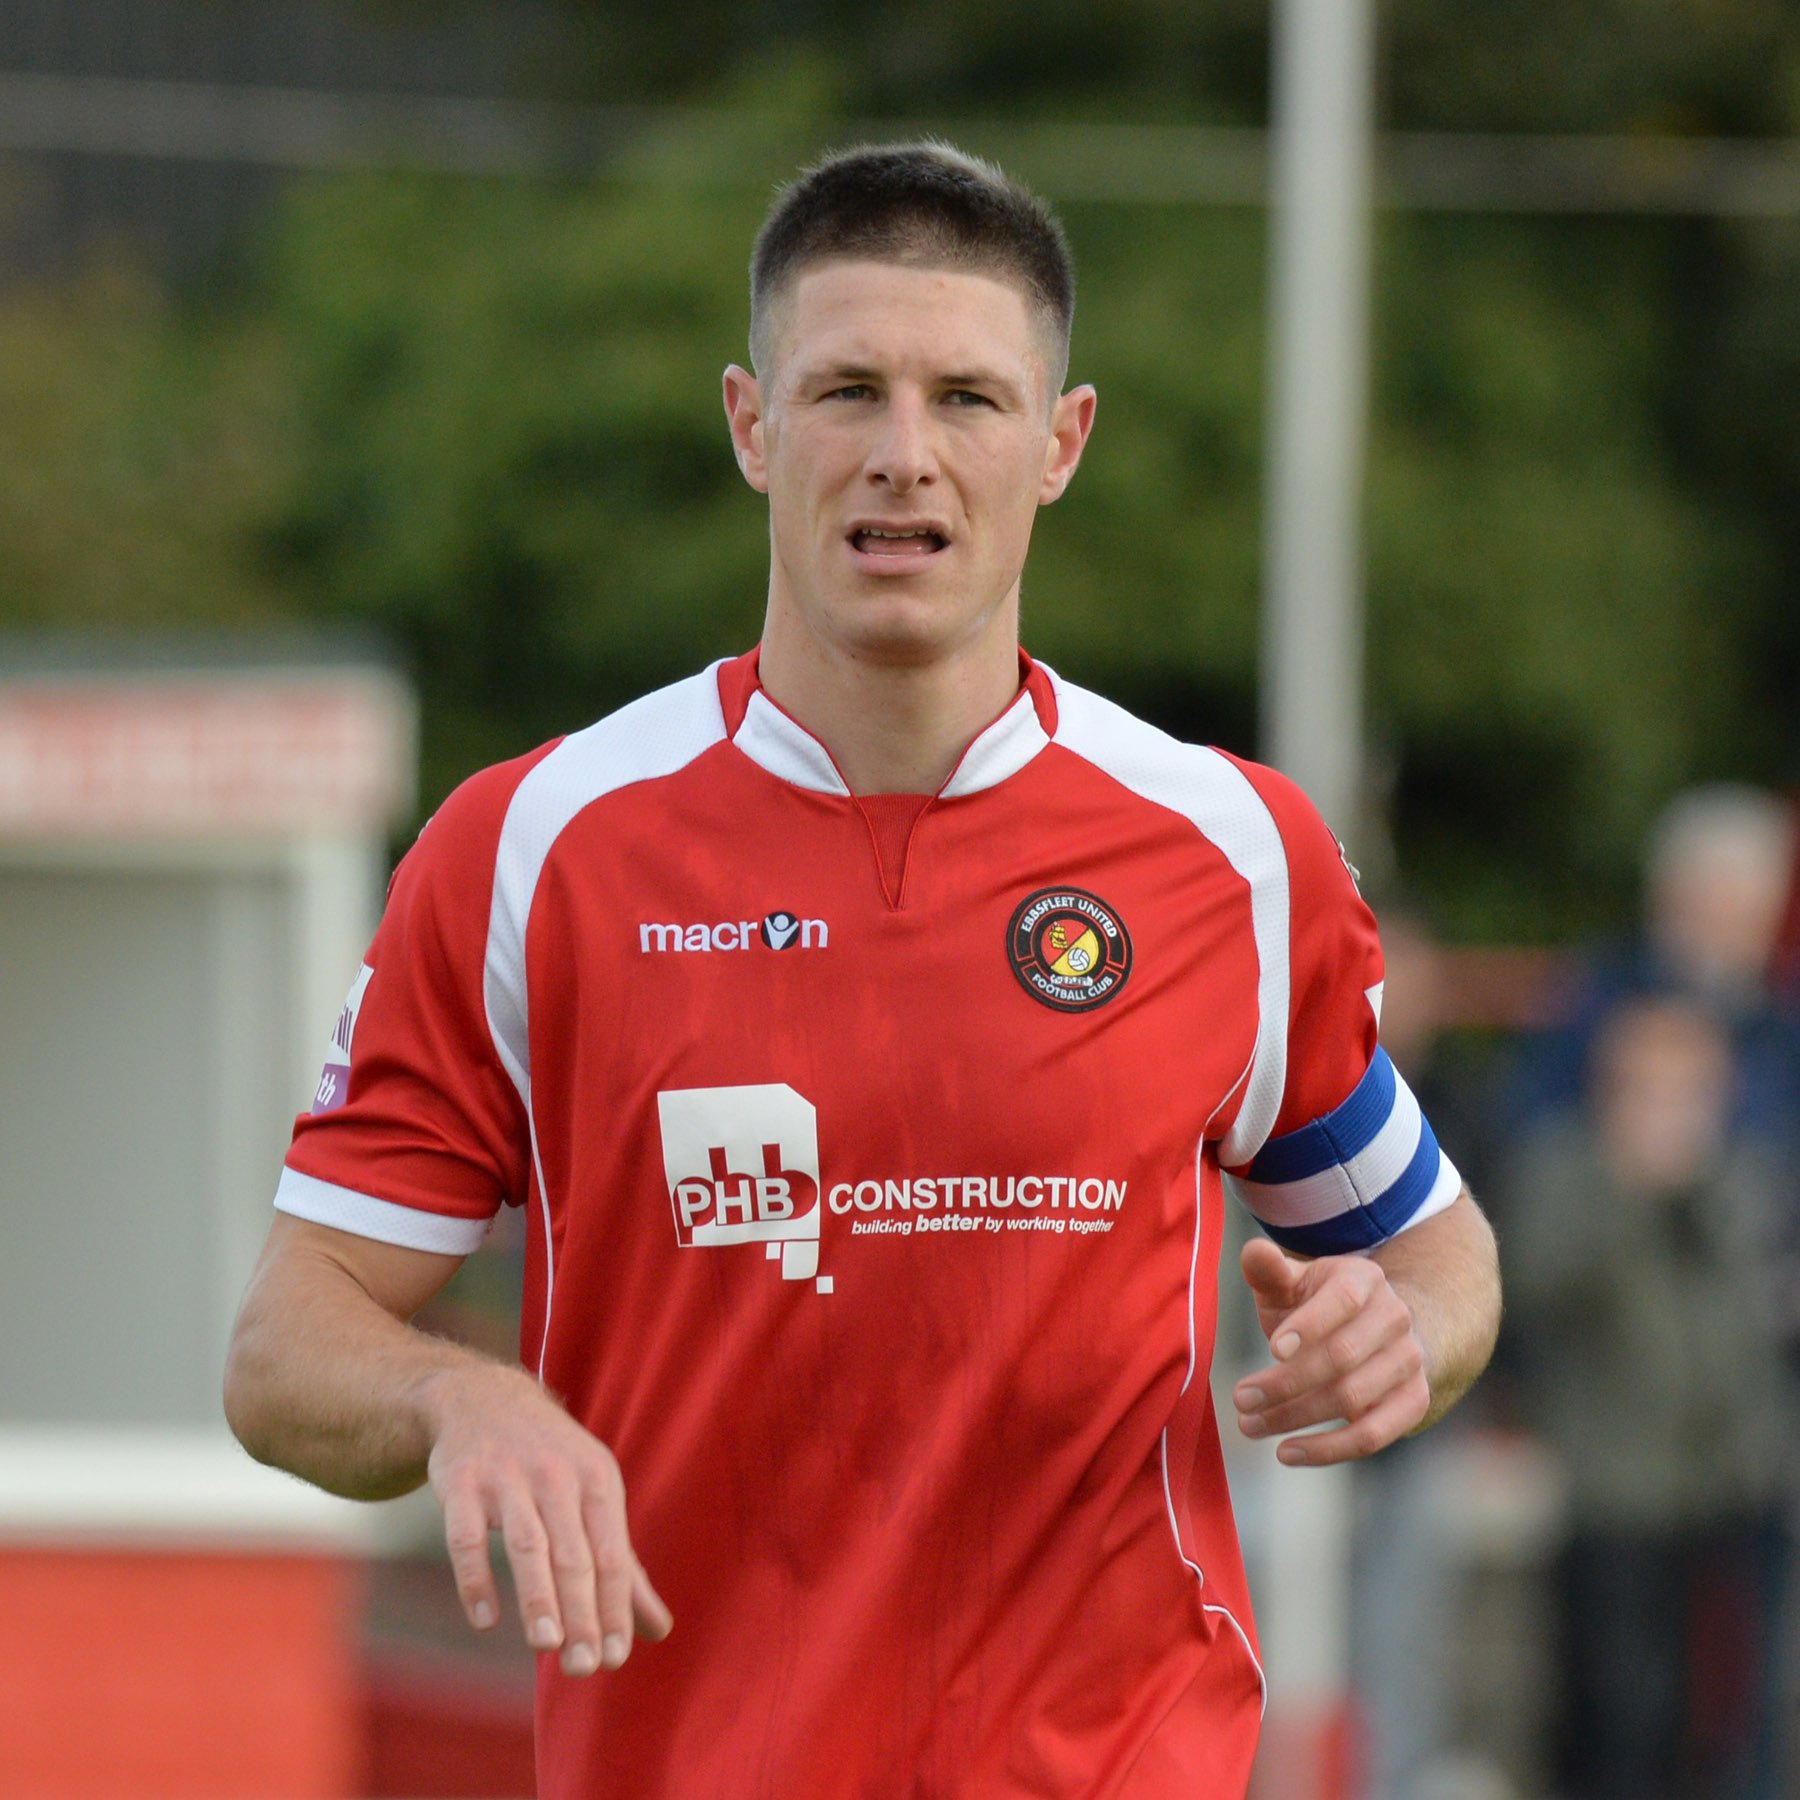 Paul Lorraine (above) skippered Fleet in what could have been his last ever game for the club. Picture by Keith Gillard.